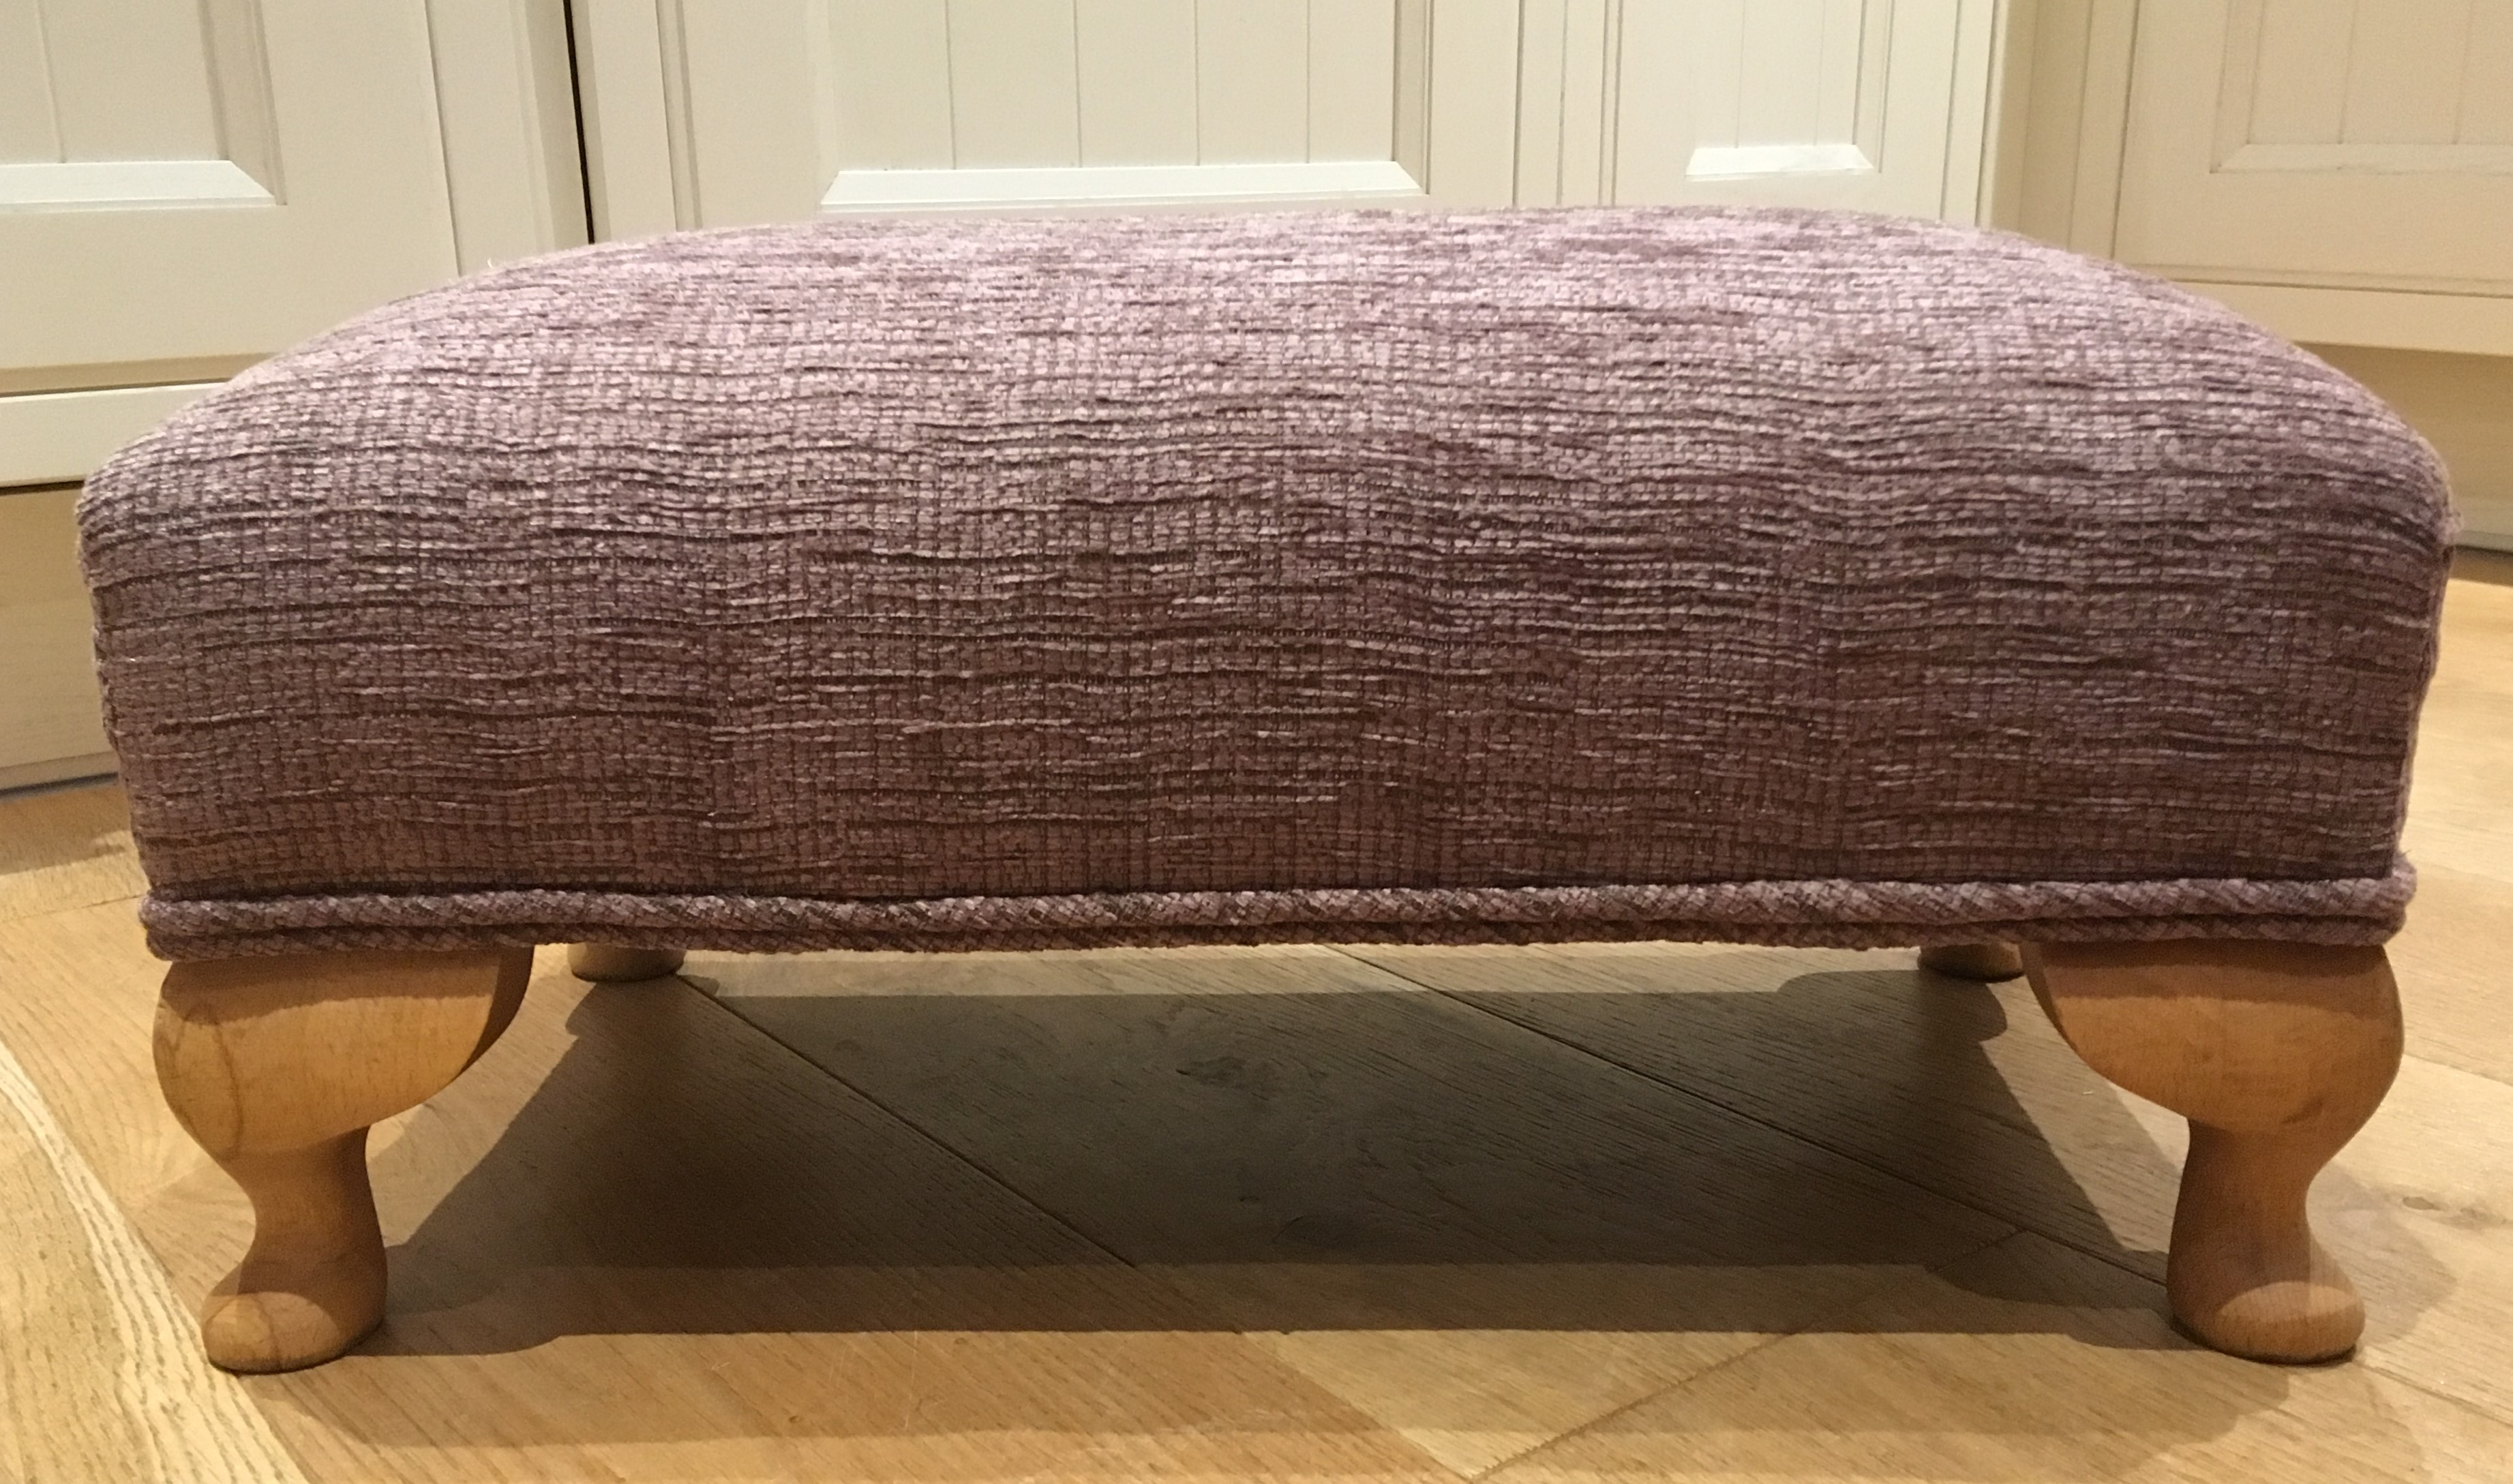 Bespoke small-sized footstool